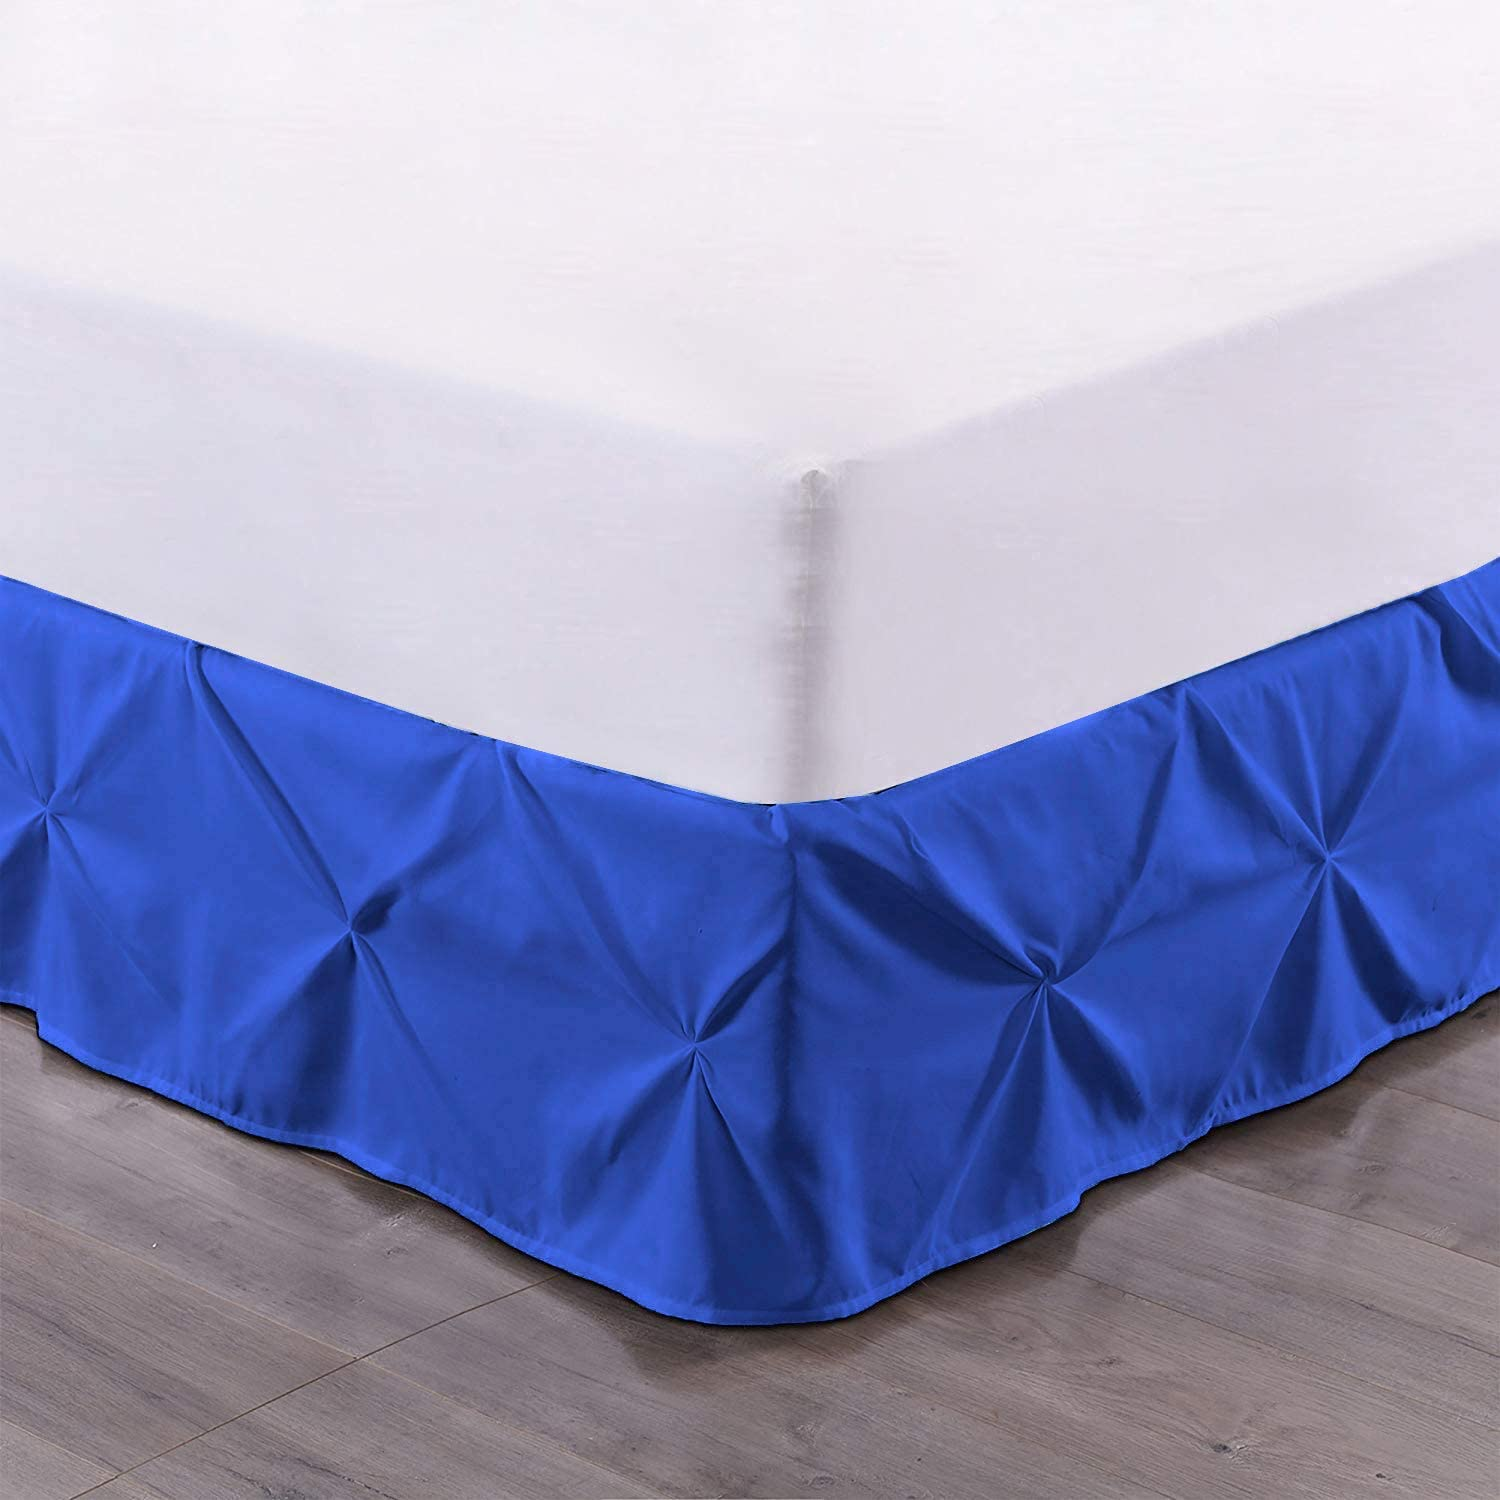 Bed Skirt - 100% Max 75% OFF Sales for sale Cotton 800 B 1-Piece Count Thread Pinch Pleated